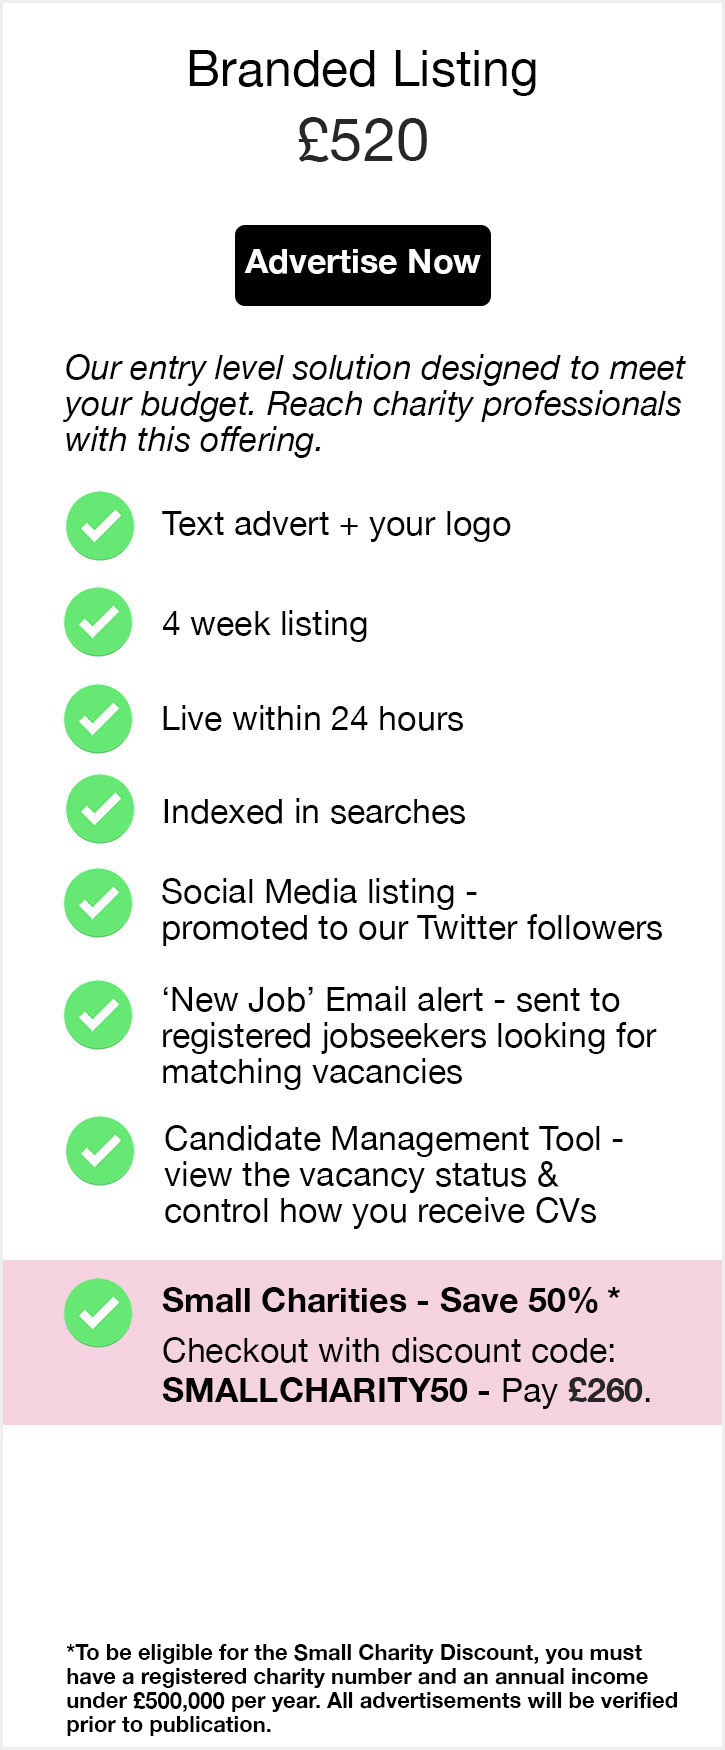 Branded Listing. £520. Advertise Now. Our entry level solution designed to meet your budget. Reach charity professionals with this offering. Text advert + your logo. 4 week listing. Live within 24 hours. Indexed in searches. Social Media listing - promoted to our followers. 'New Job' Email alert - sent to registered jobseekers looking for matching vacancies. Candidate Management Tool - view the status of your posting and control how you receive CVs. Small Charities - Save 50%. Checkout with discount code: SMALLCHARITY50 - Pay £260.